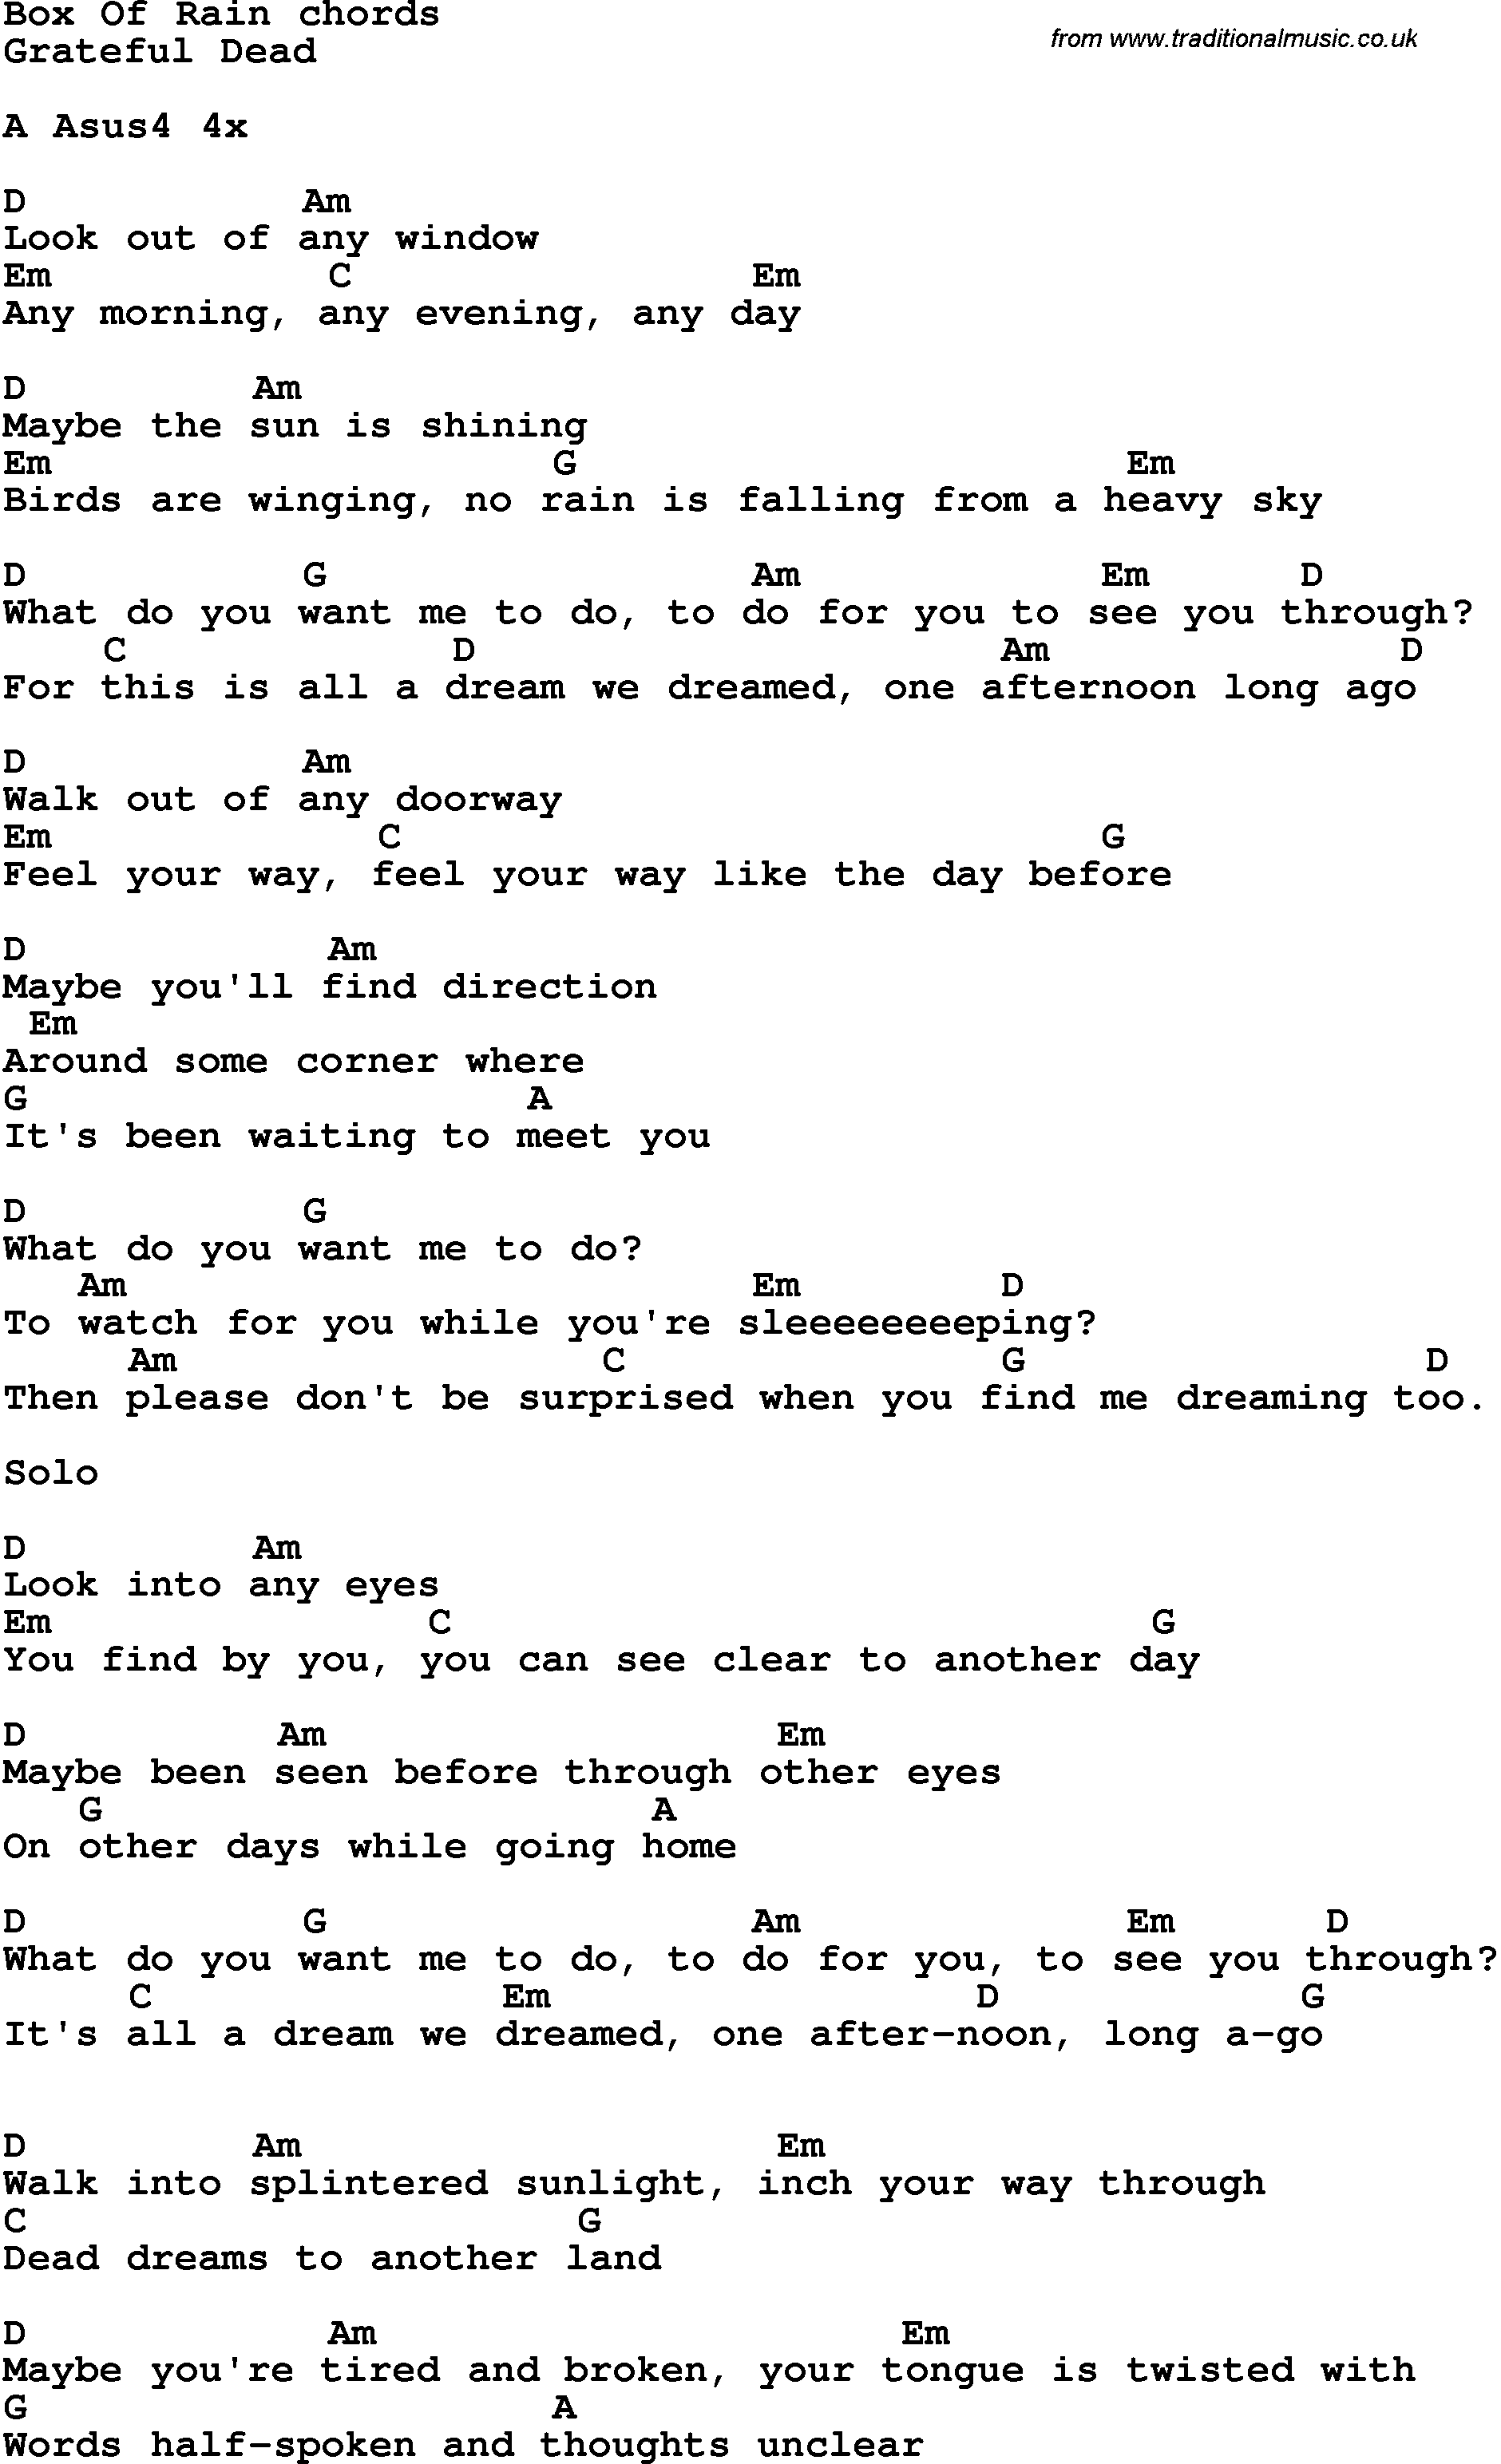 Song Lyrics With Guitar Chords For Box Of Rain